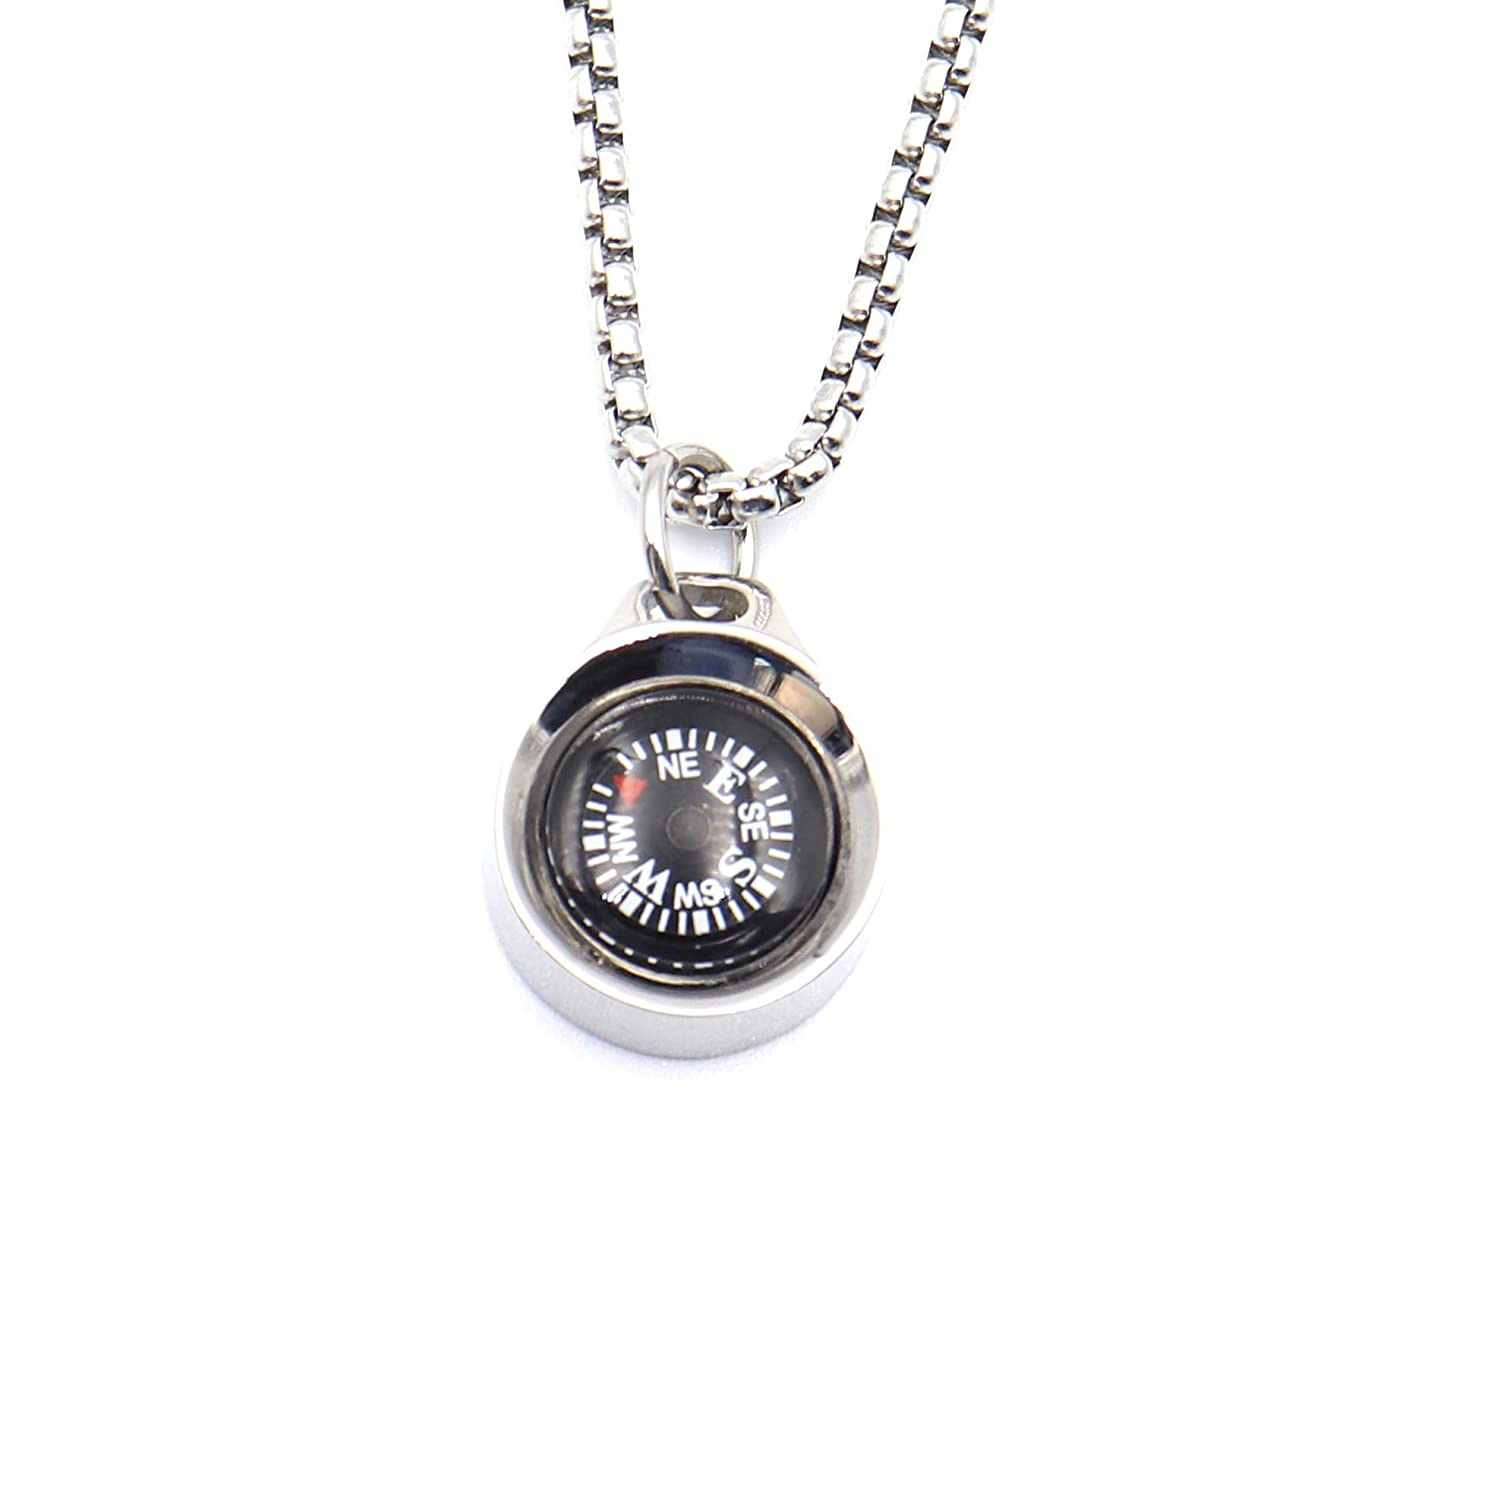 DETUCK TM Silver Compass Necklace, Navigation Compass Necklace for Women Men Best Friends, Necklace Compass Stylish Jewelry Gift Wrap